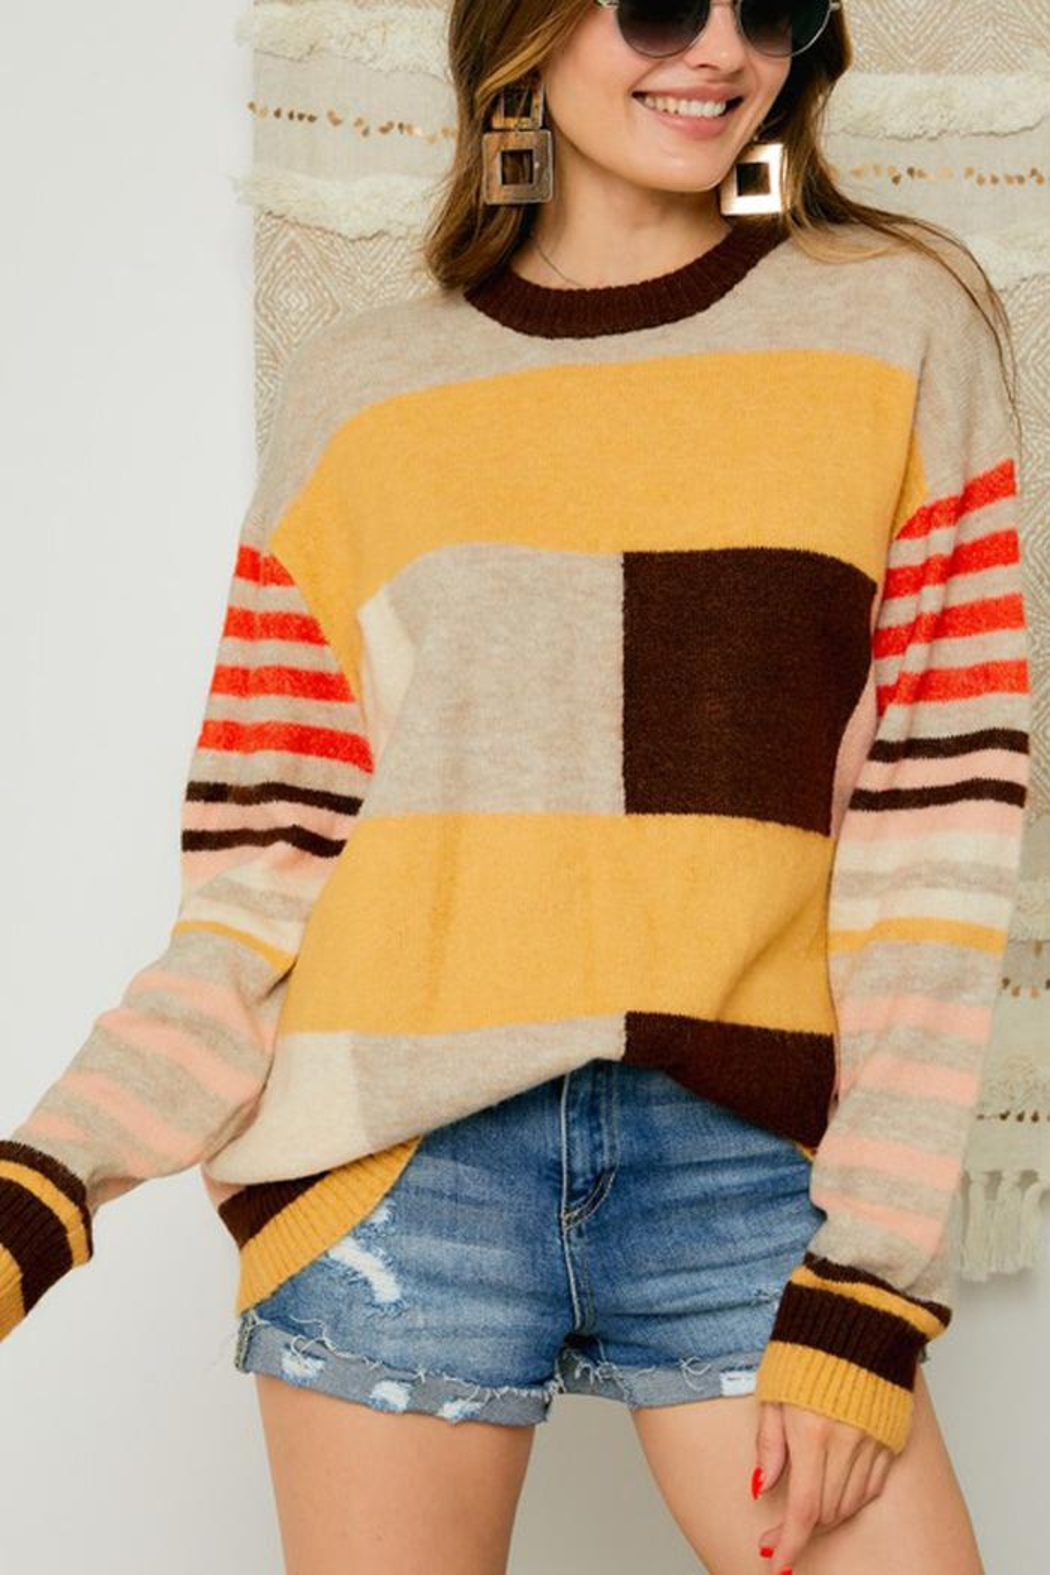 Adora Multi Color Block And Stripe Knit Sweater Jumper - Main Image